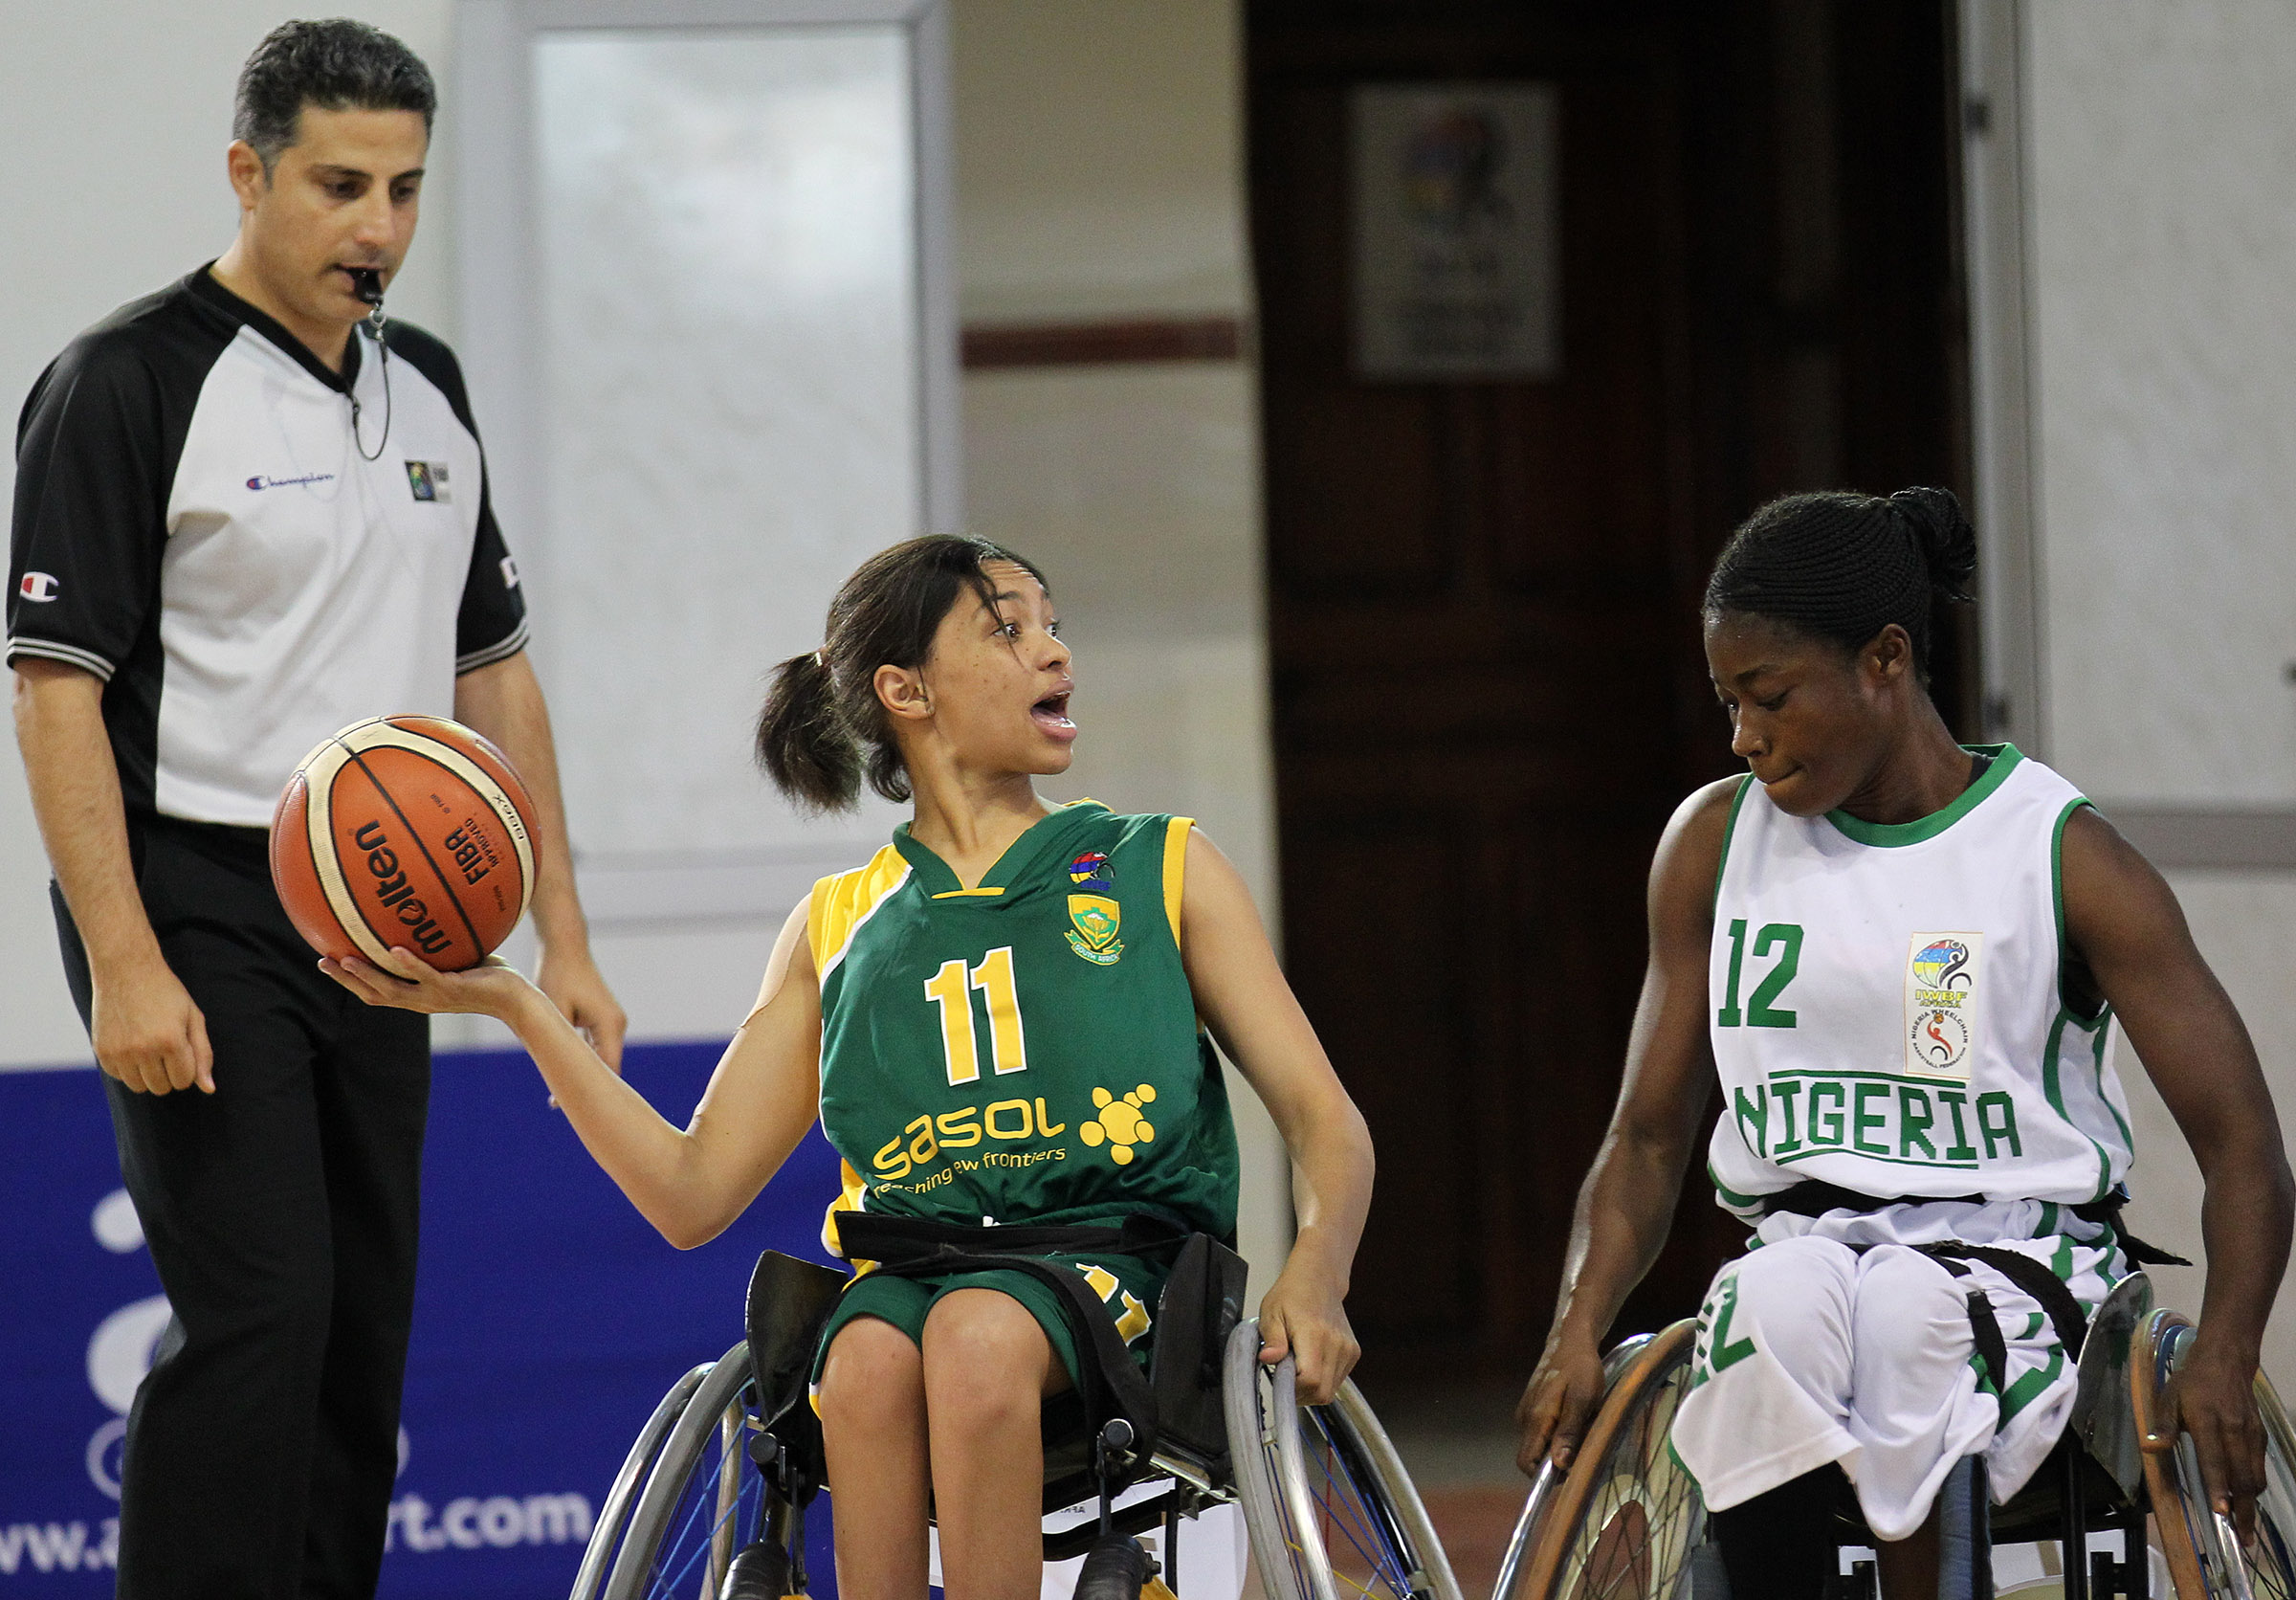 SA women go down to Nigeria in Algeria